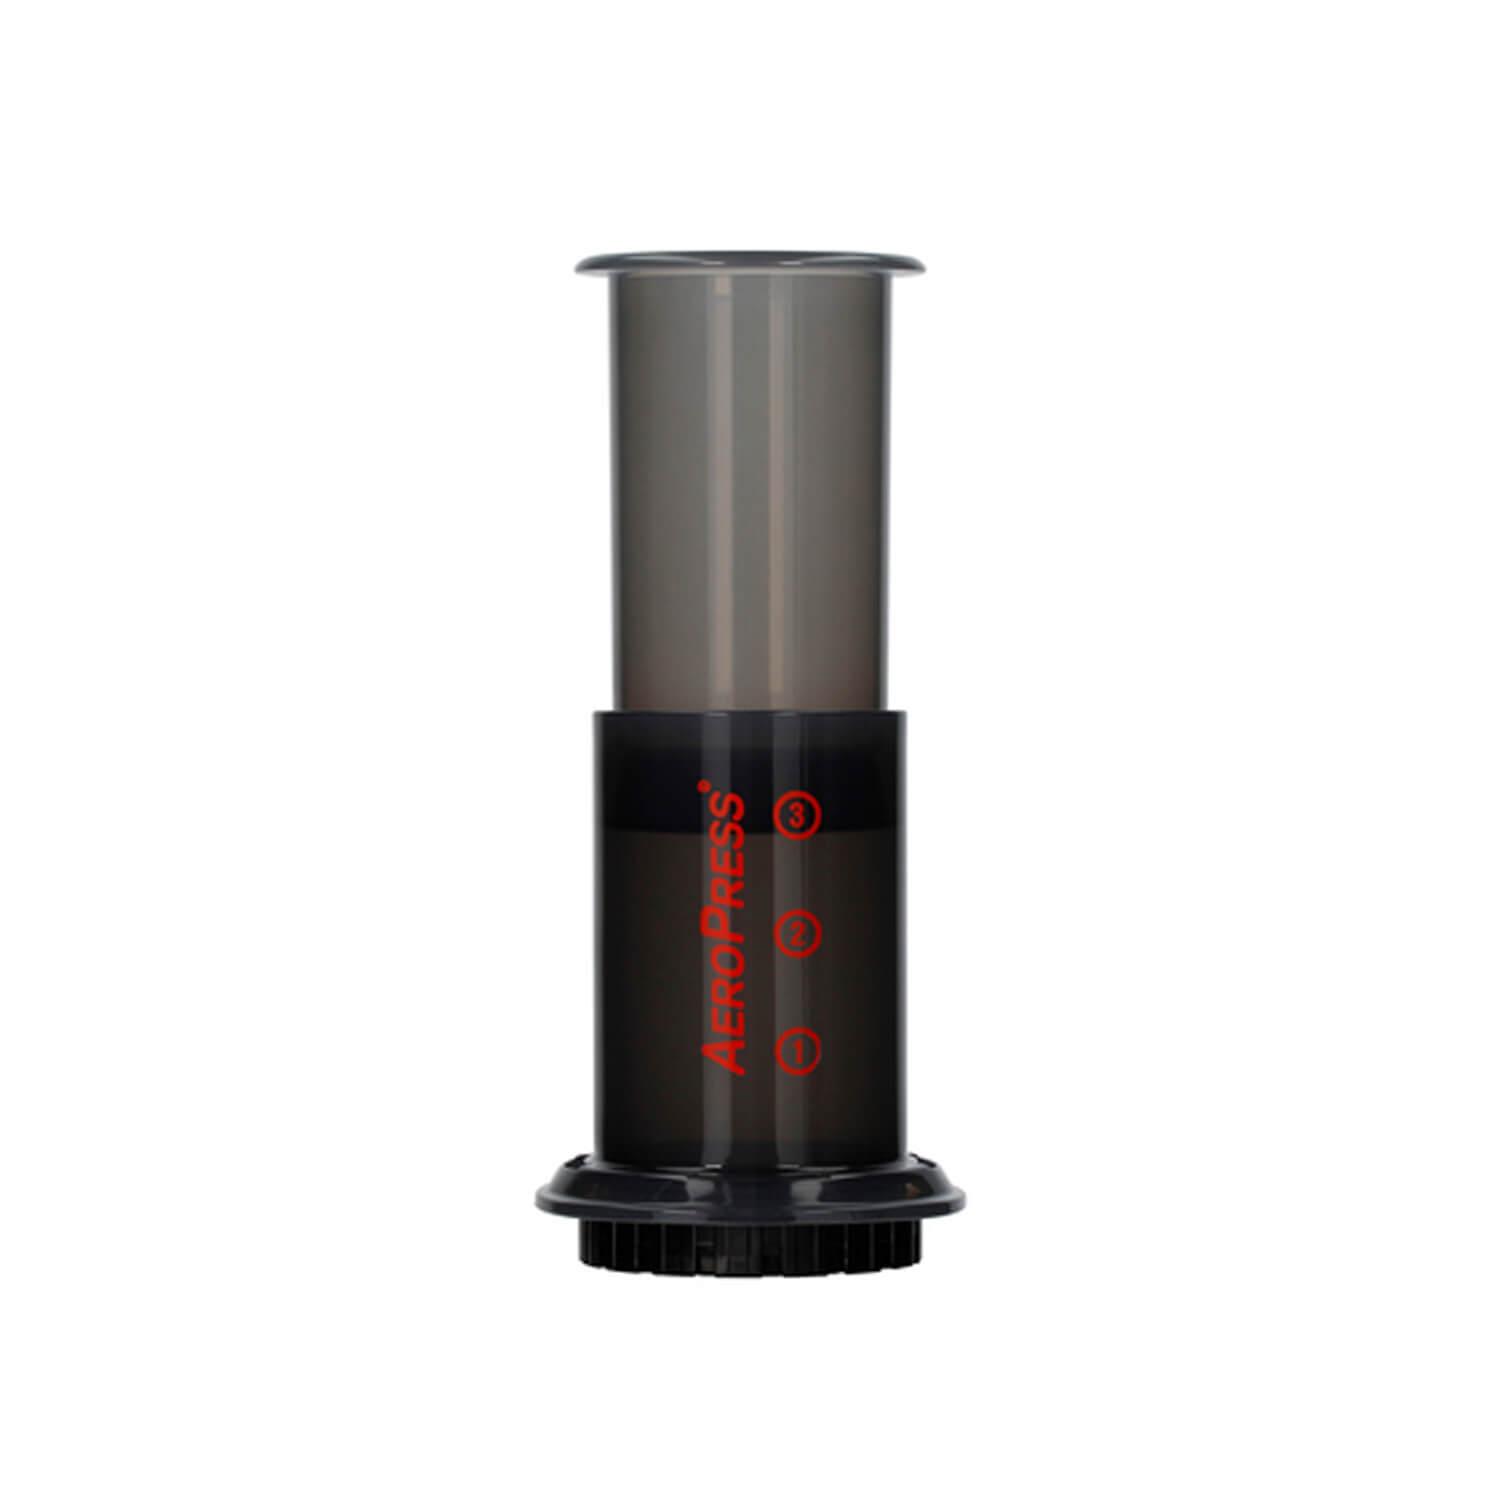 Aeropress - Coffee Maker met filters